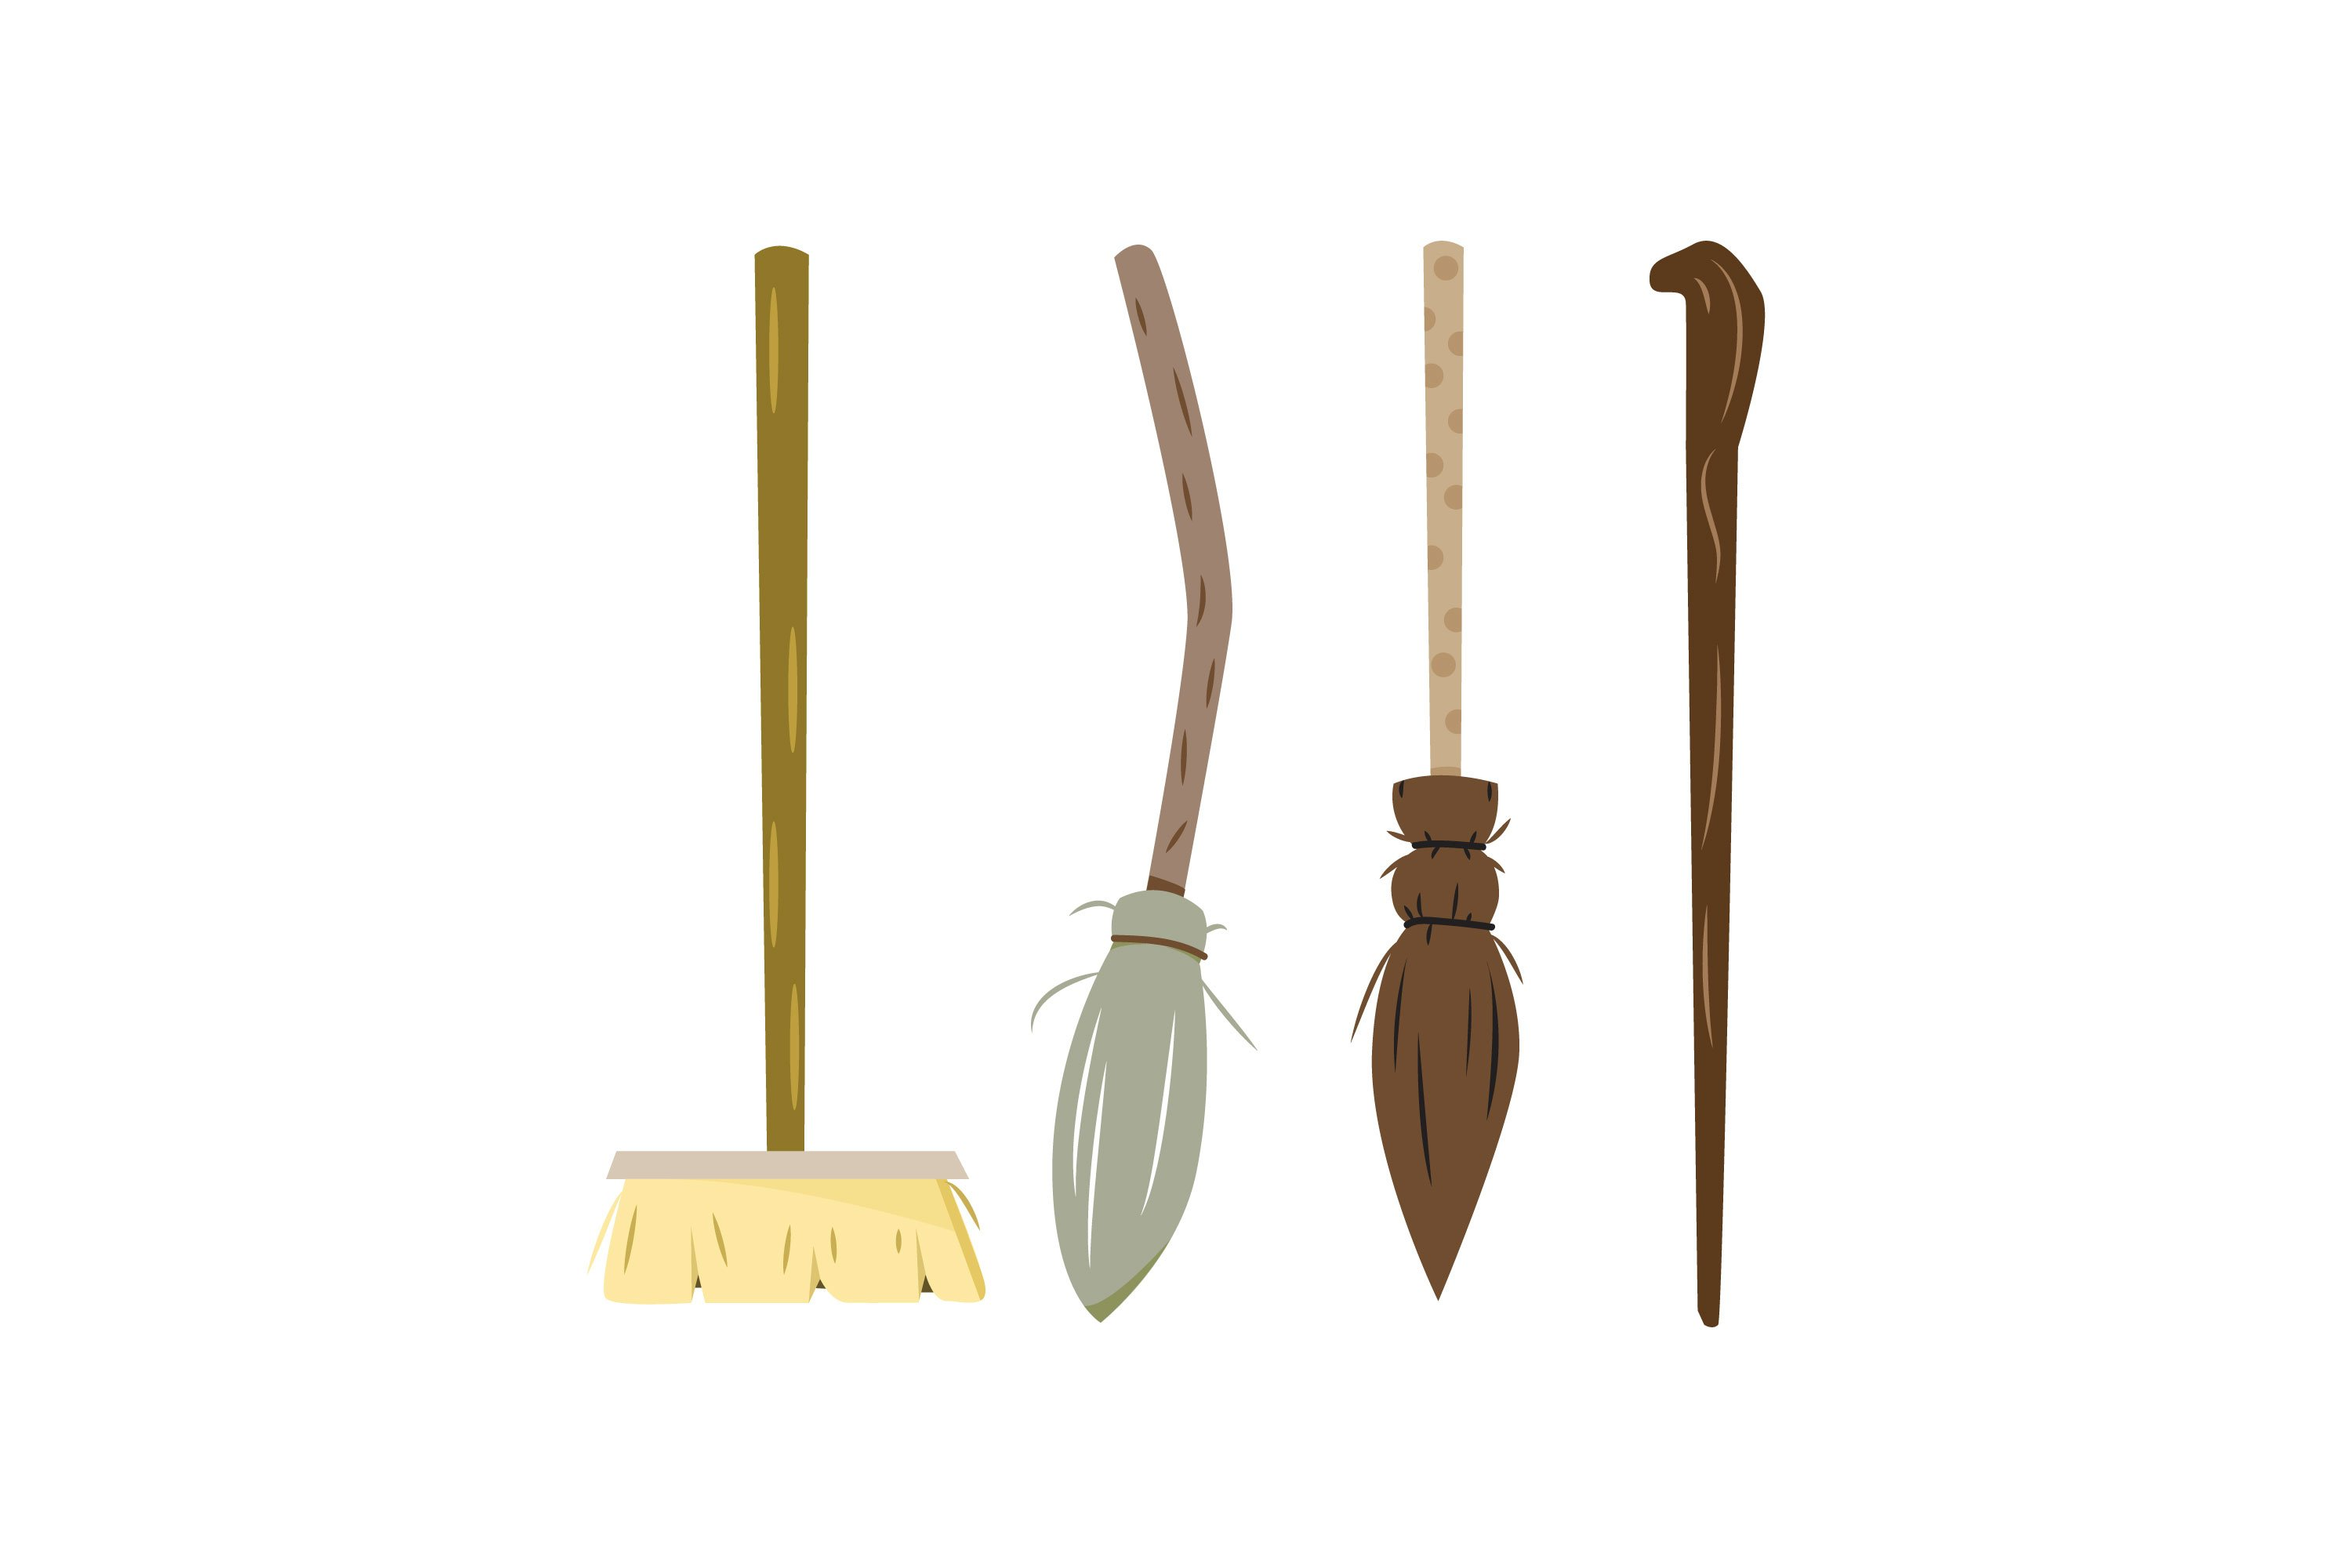 Broomstick Illustrations example image 1